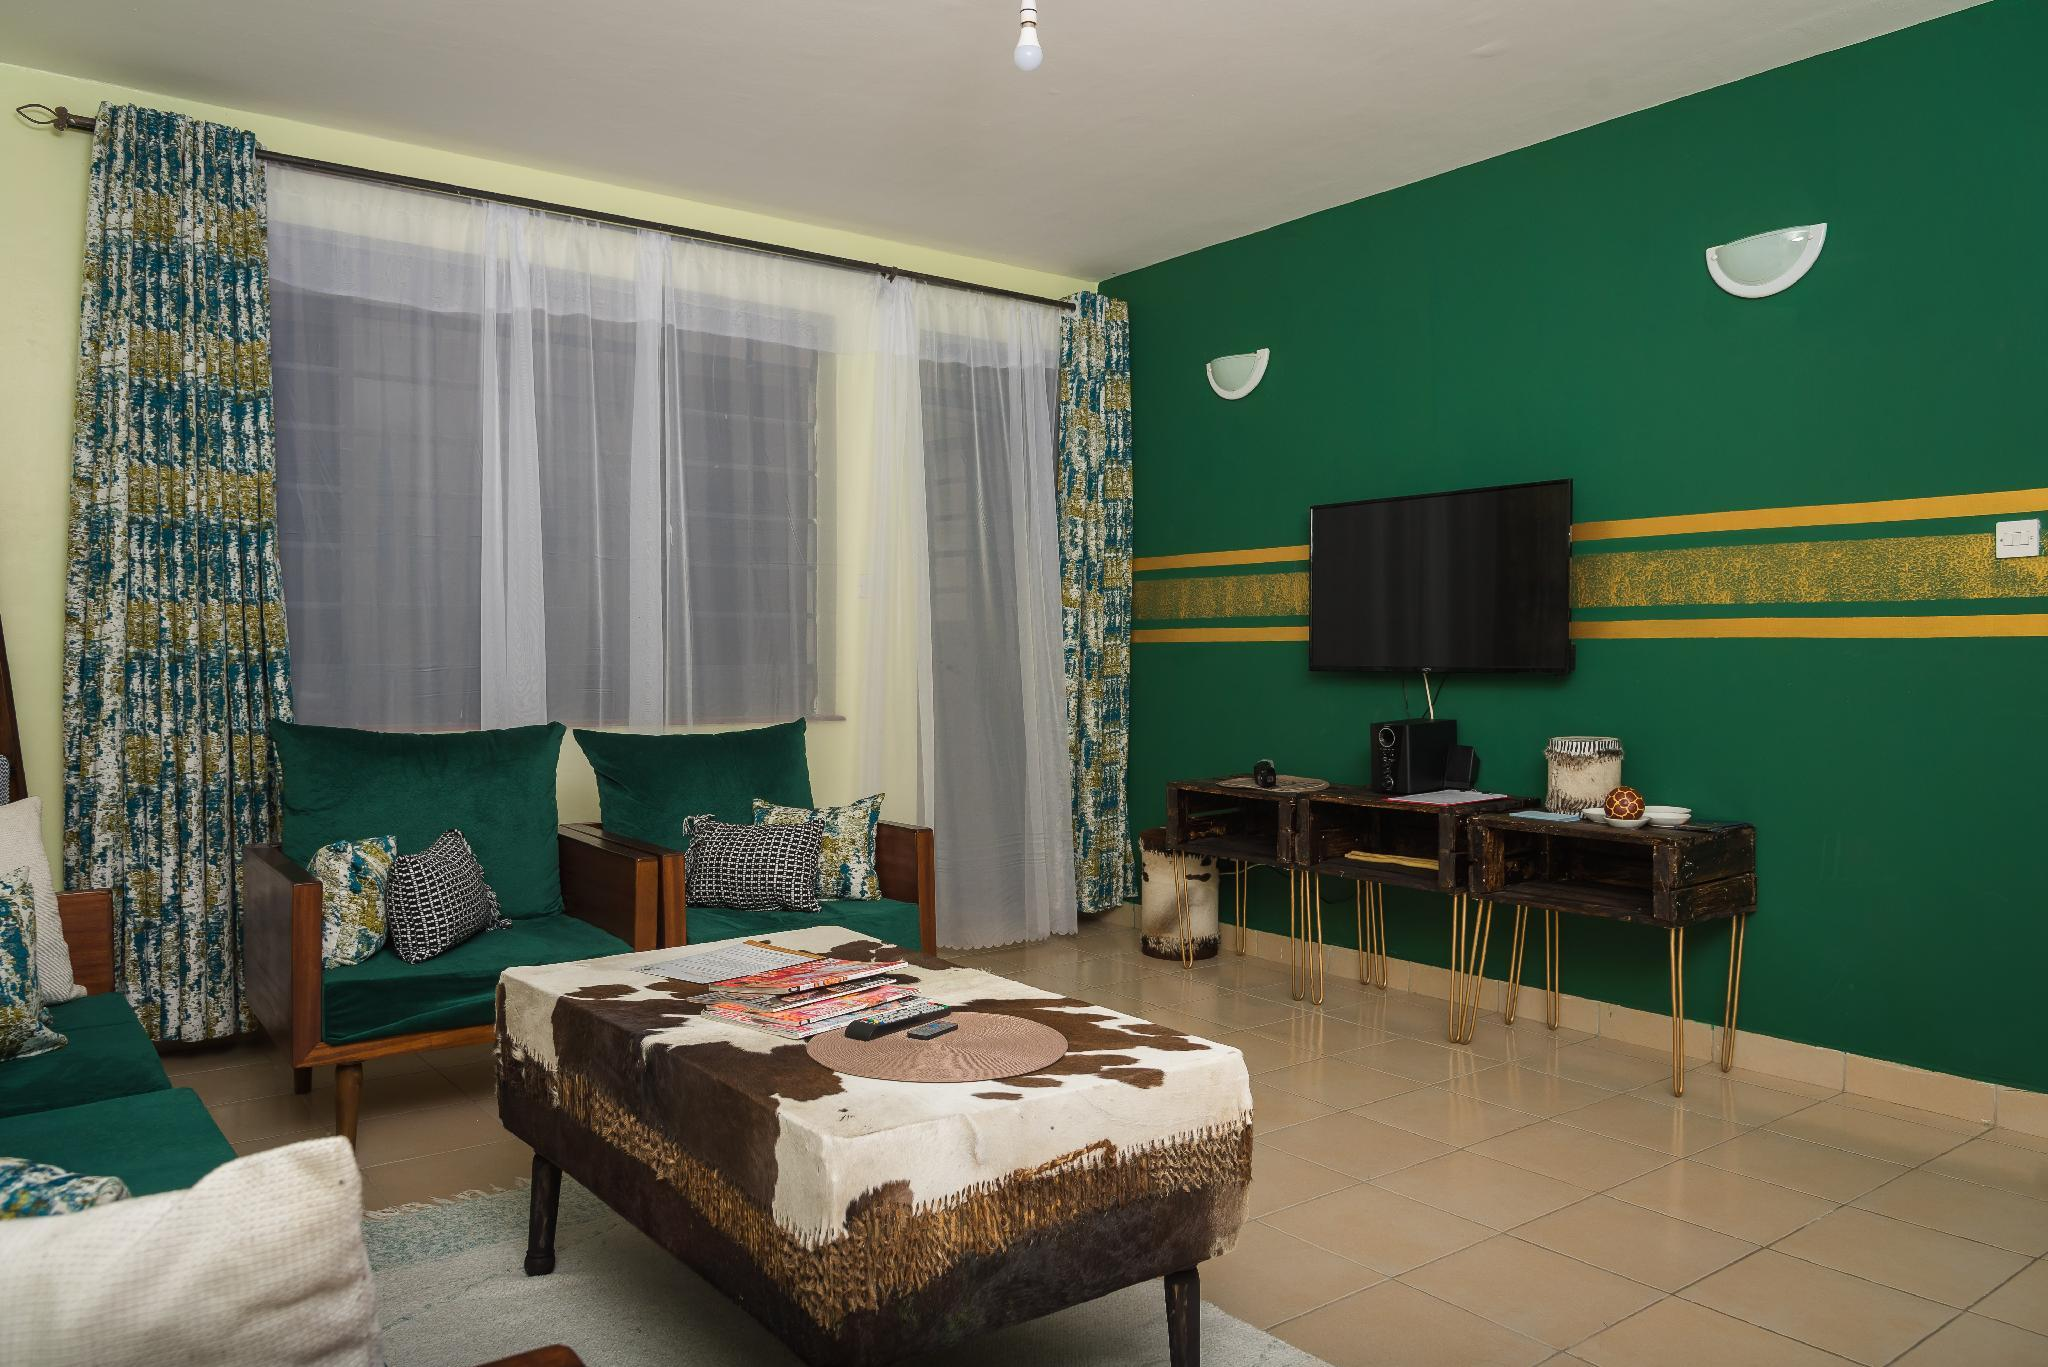 Sefu Furnished Apartment   Green And Gold